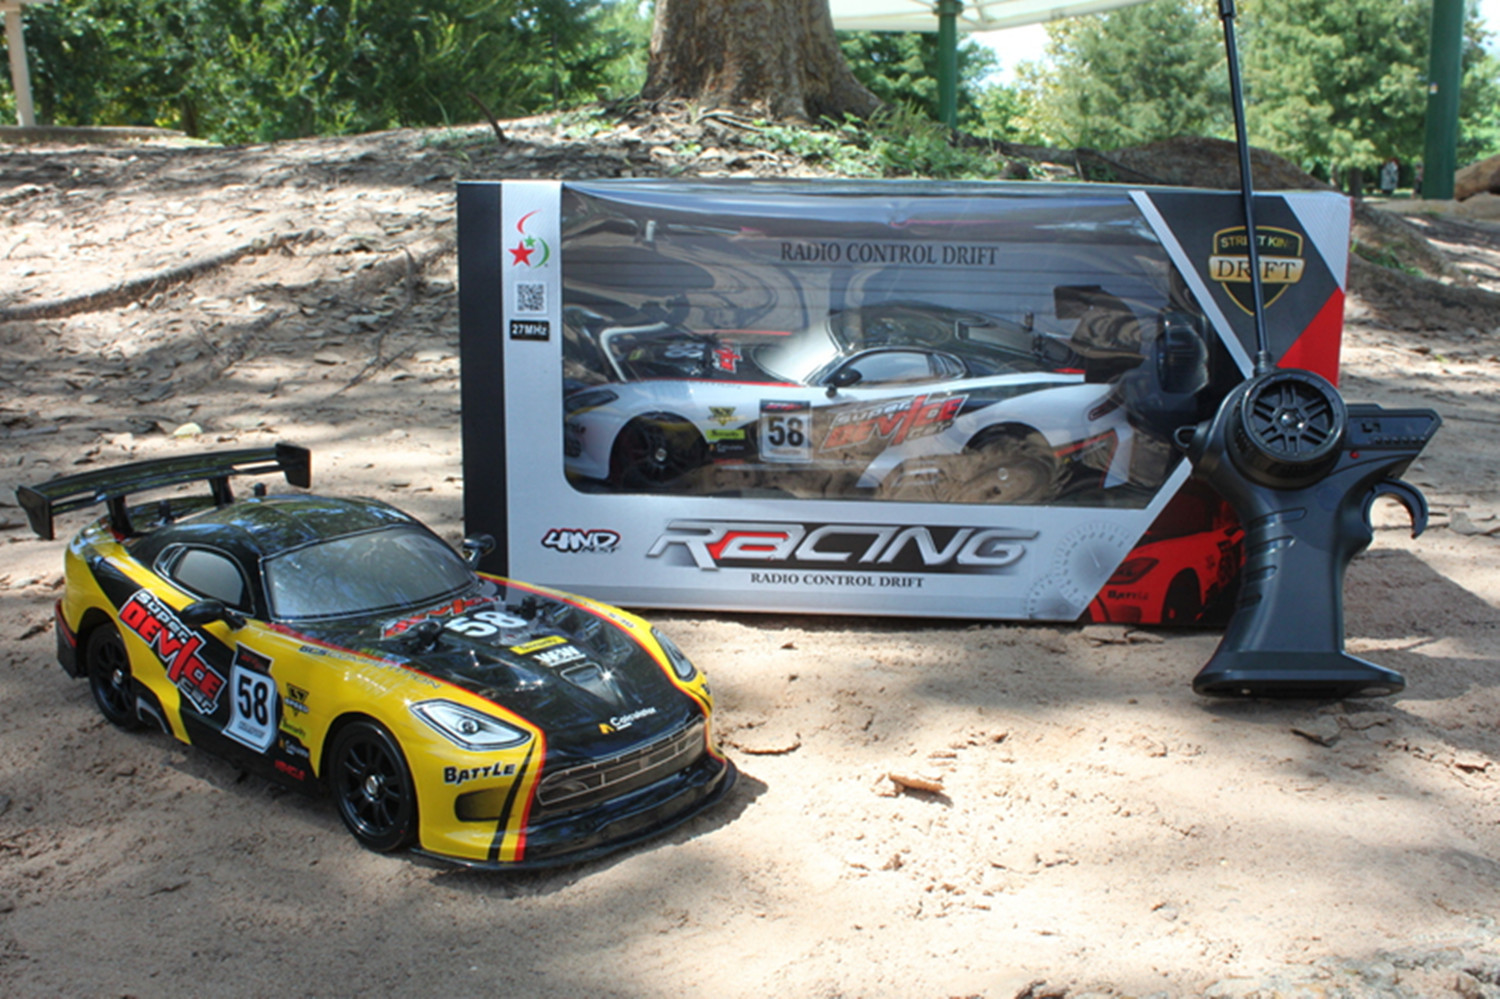 Inspired 1:14 Super-Fast Racing R/C 4WD Street King Drift Car